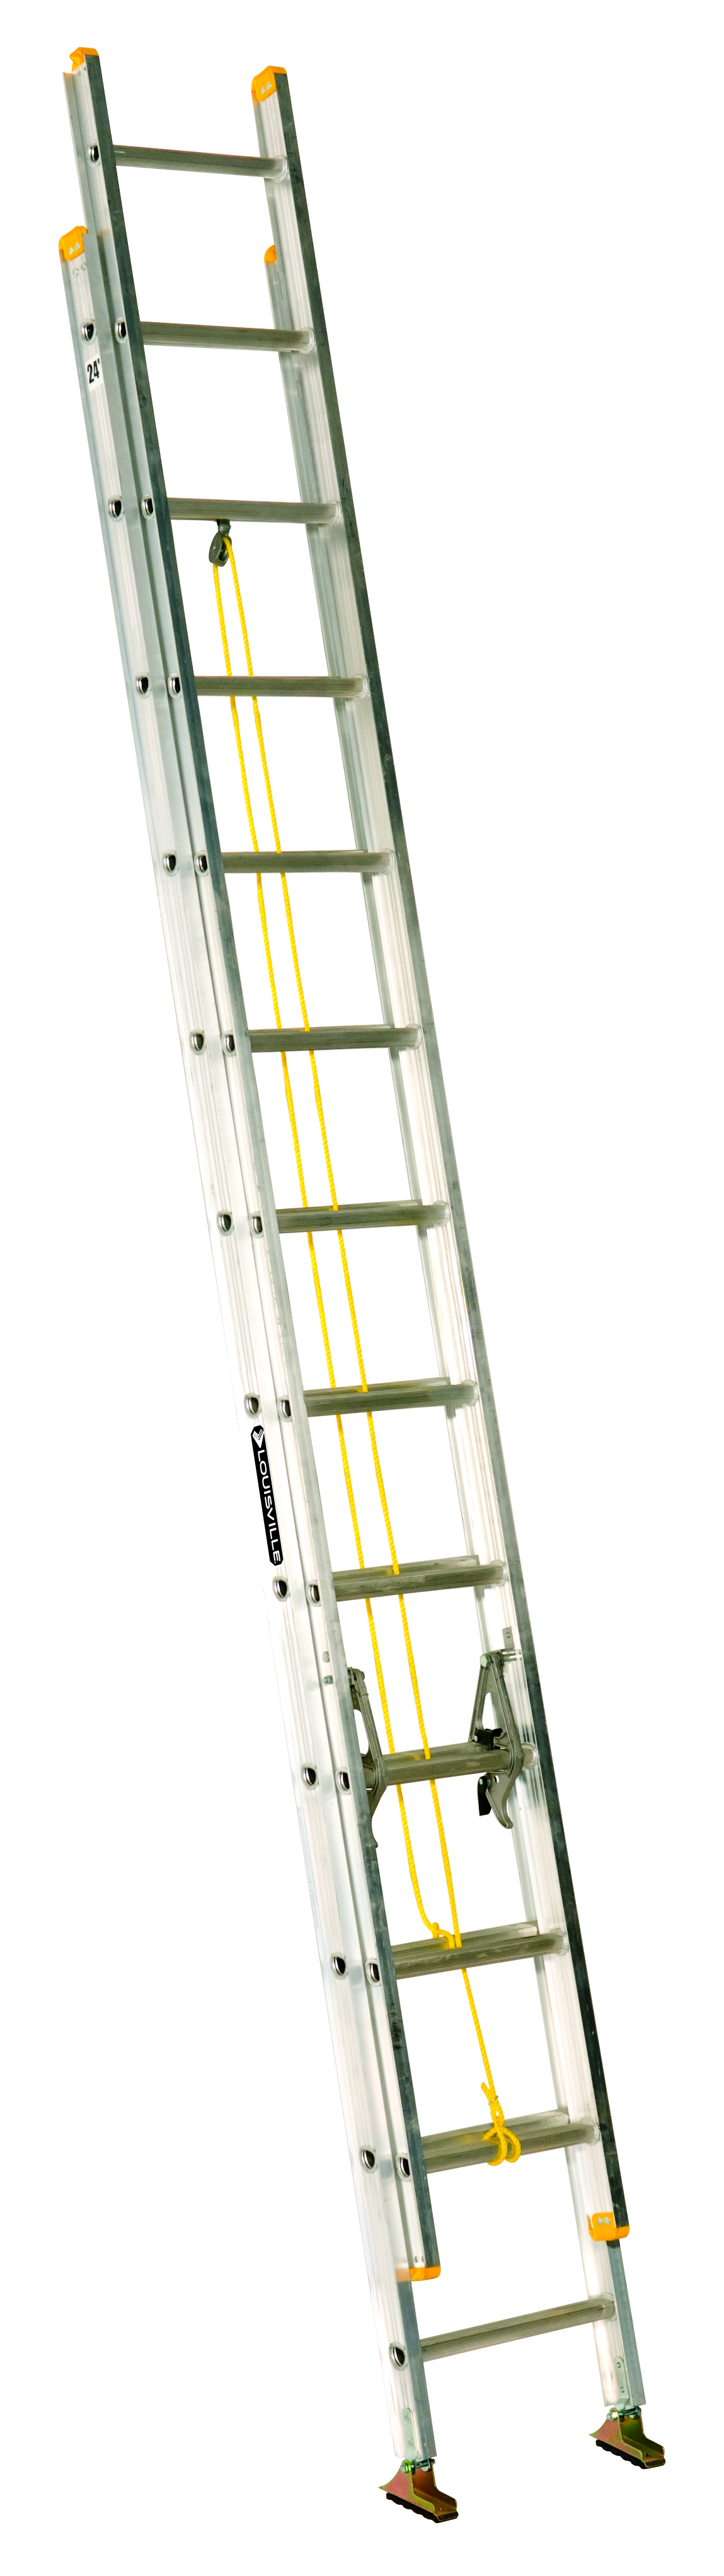 14 Aluminum Extension Ladder : Ladders scaffolding tool storage extension